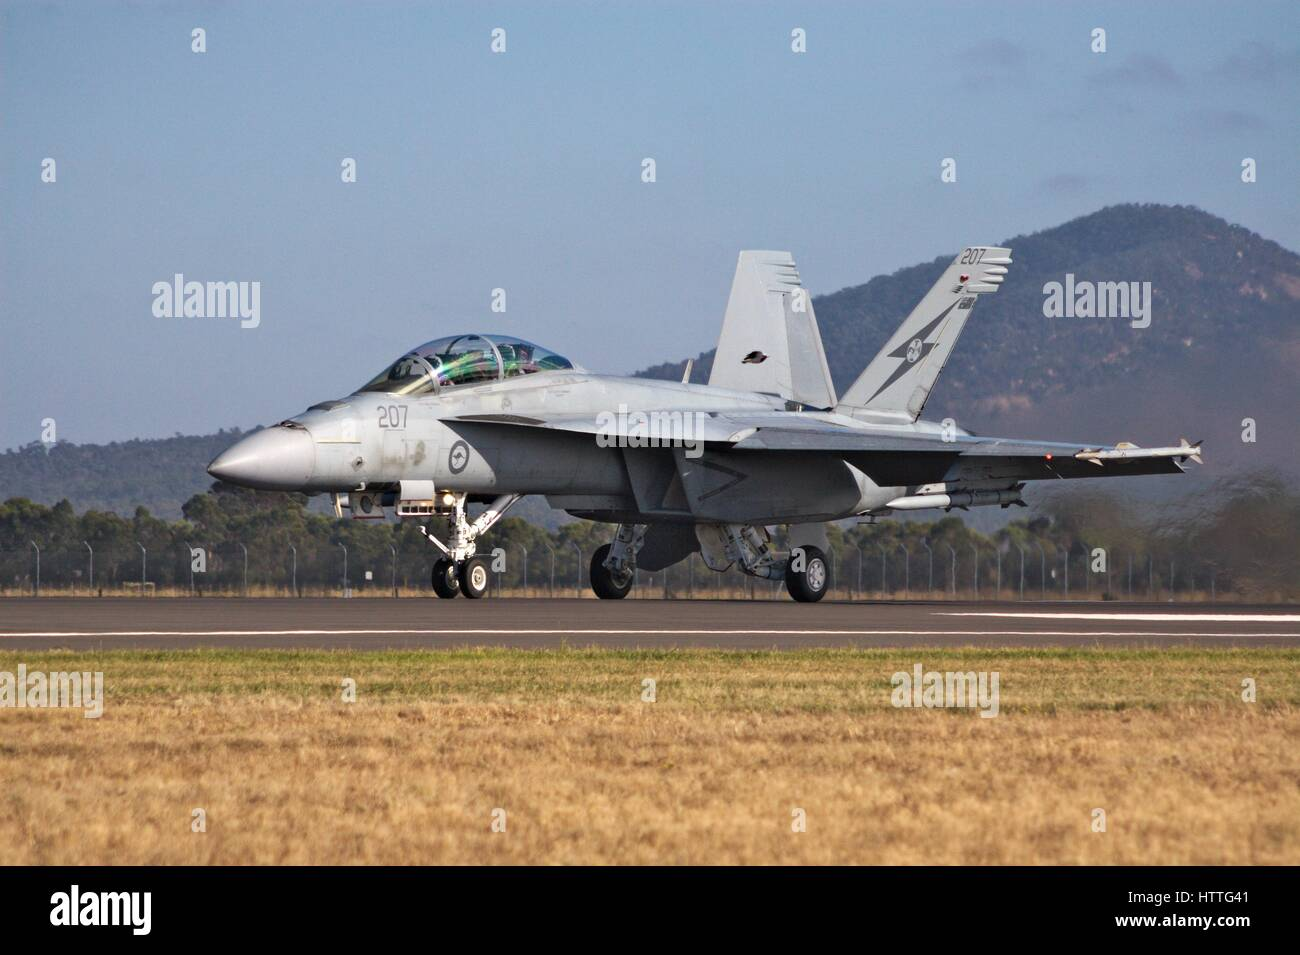 F/A-18F Super Hornet on the runway at the Avalon airshow, Melbourne, Australia, 2017. - Stock Image